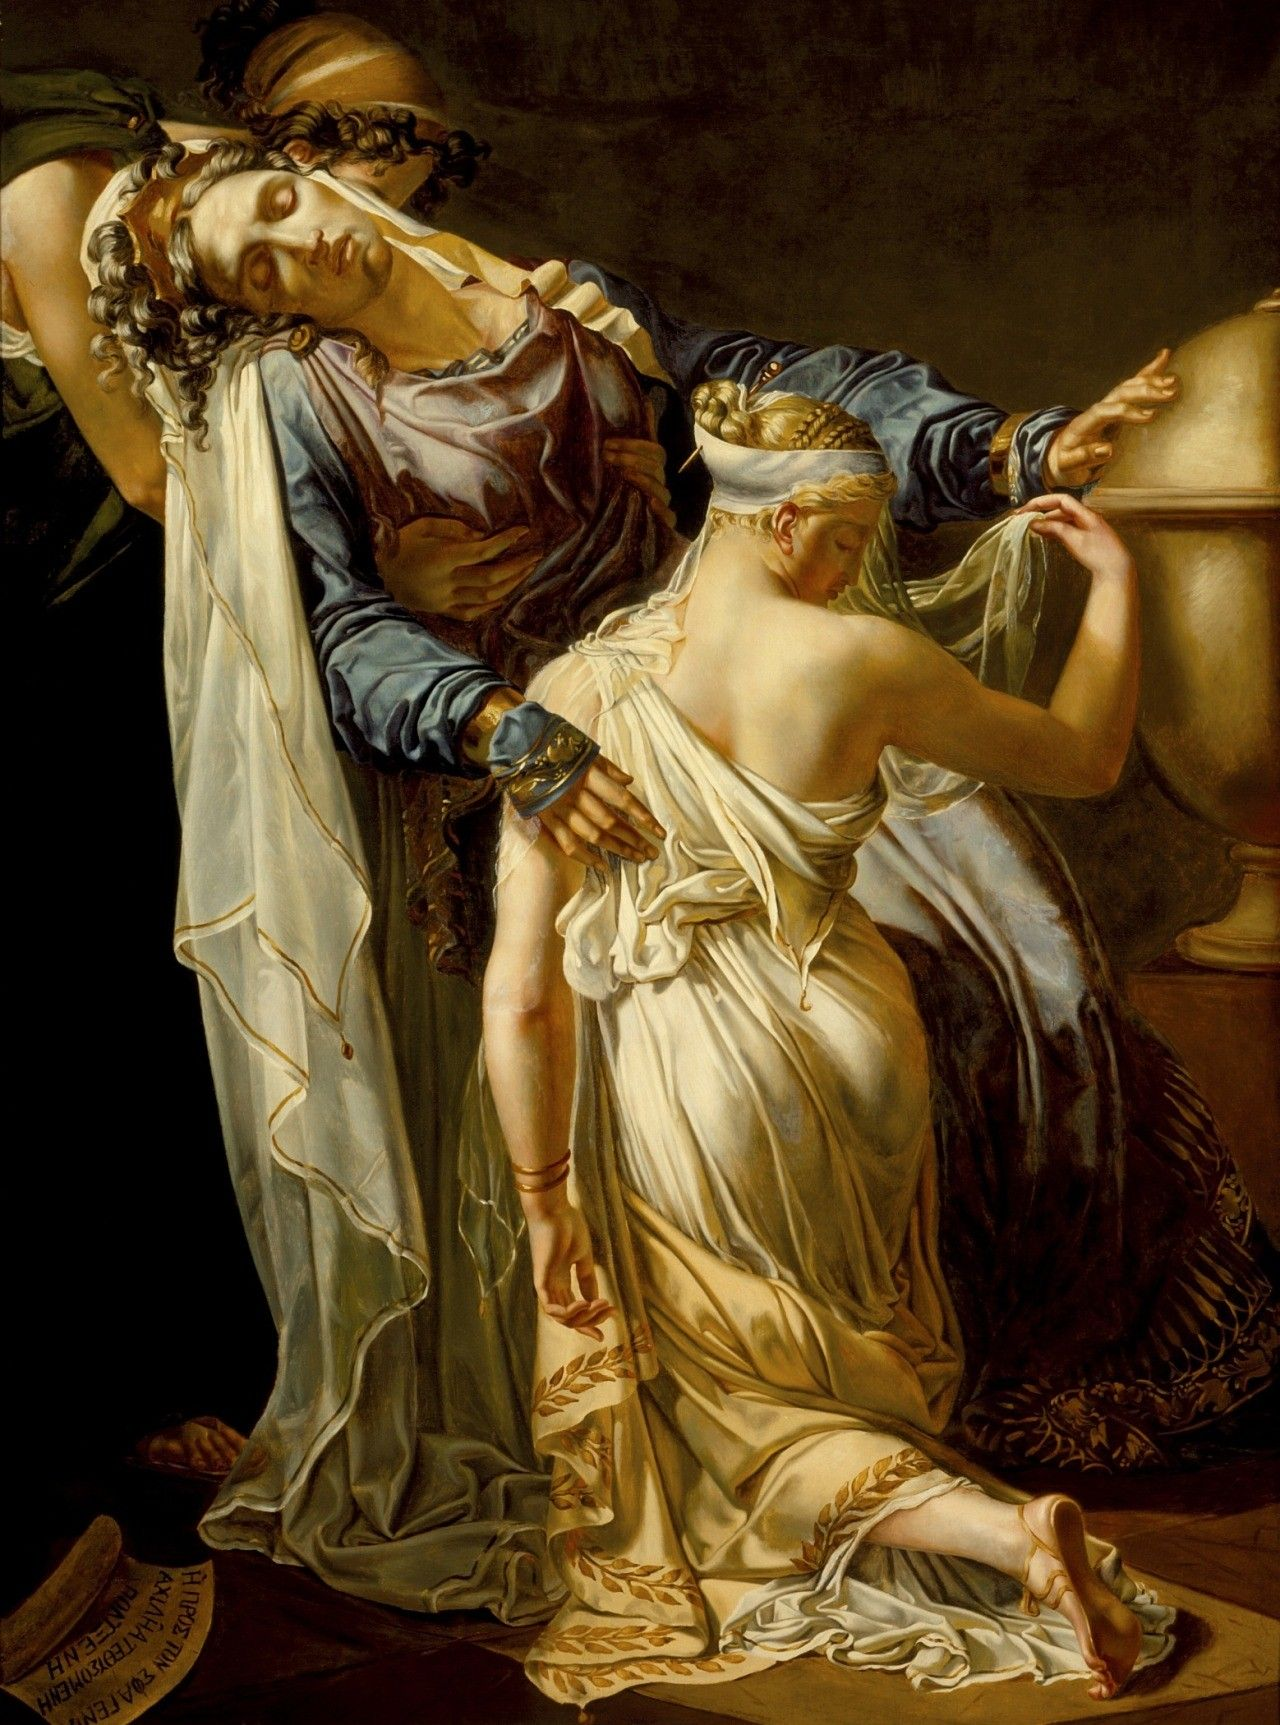 Hecuba and Polyxenaby Merry-Joseph Blondel France, after 1814 oil on canvas